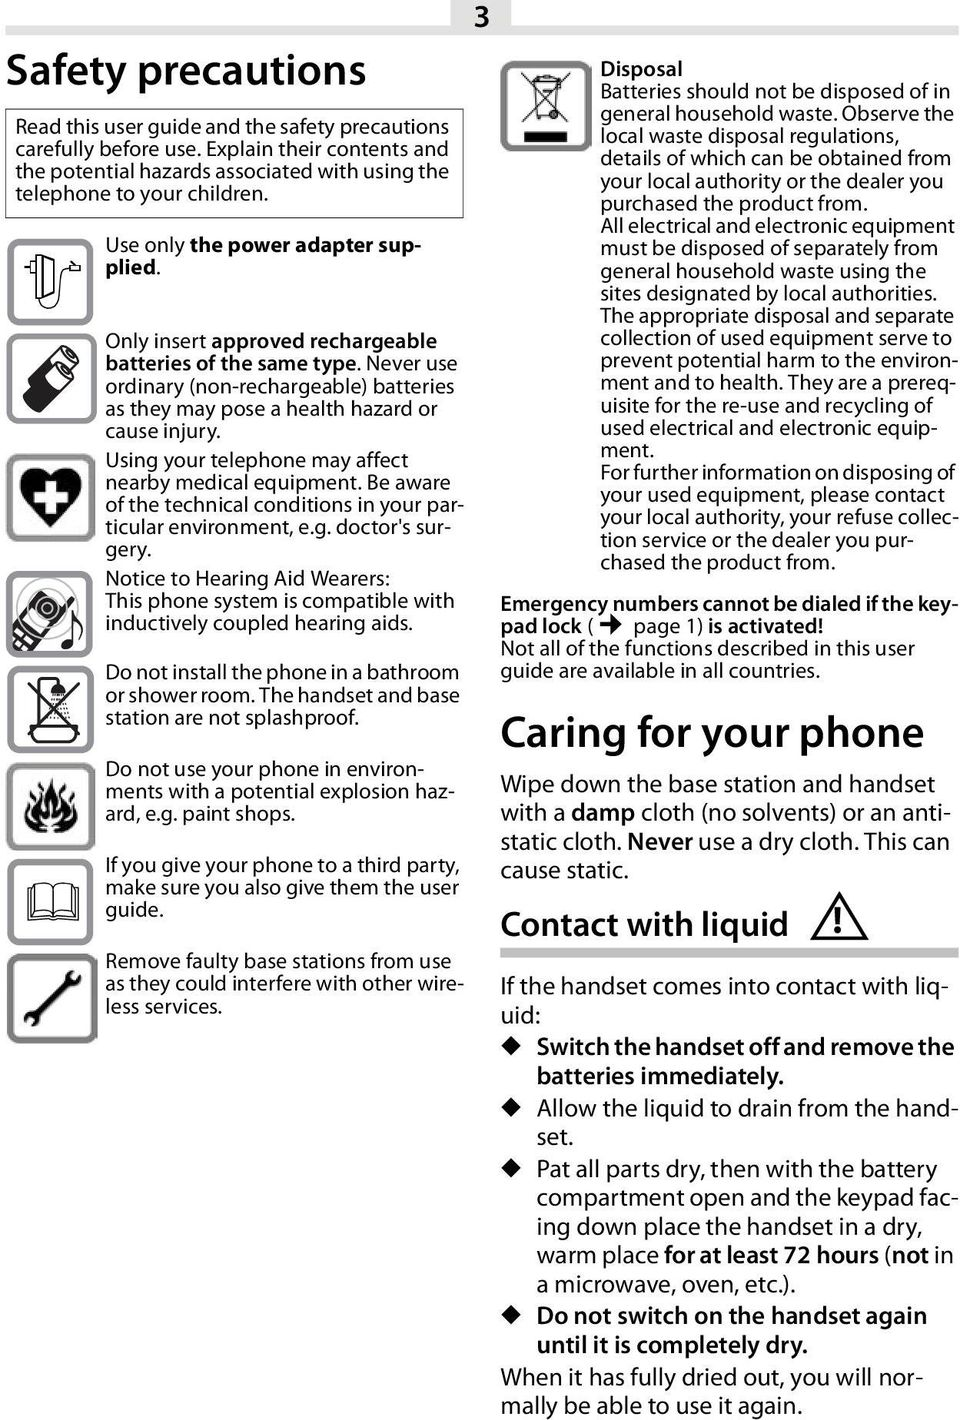 Using your telephone may affect nearby medical equipment. Be aware of the technical conditions in your particular environment, e.g. doctor's surgery.